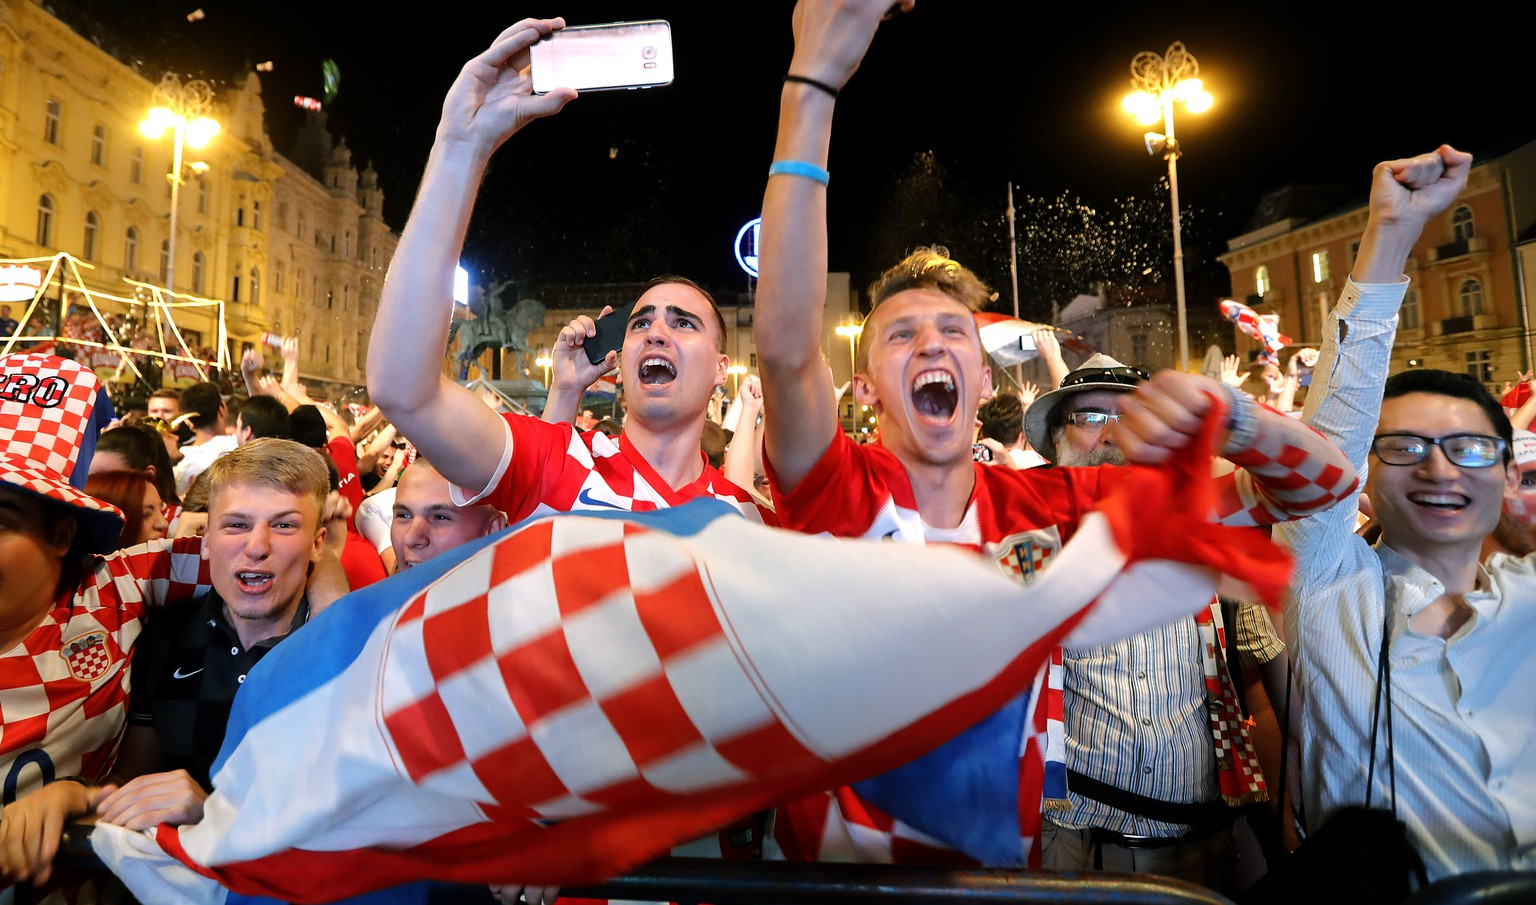 epa06814542 Croatian national soccer team fans celebrate winning he FIFA World Cup 2018 group D preliminary round soccer match between Croatia and Nigeria in downtown Zagreb, Croatia, 16 June 2018.  EPA/ANTONIO BAT